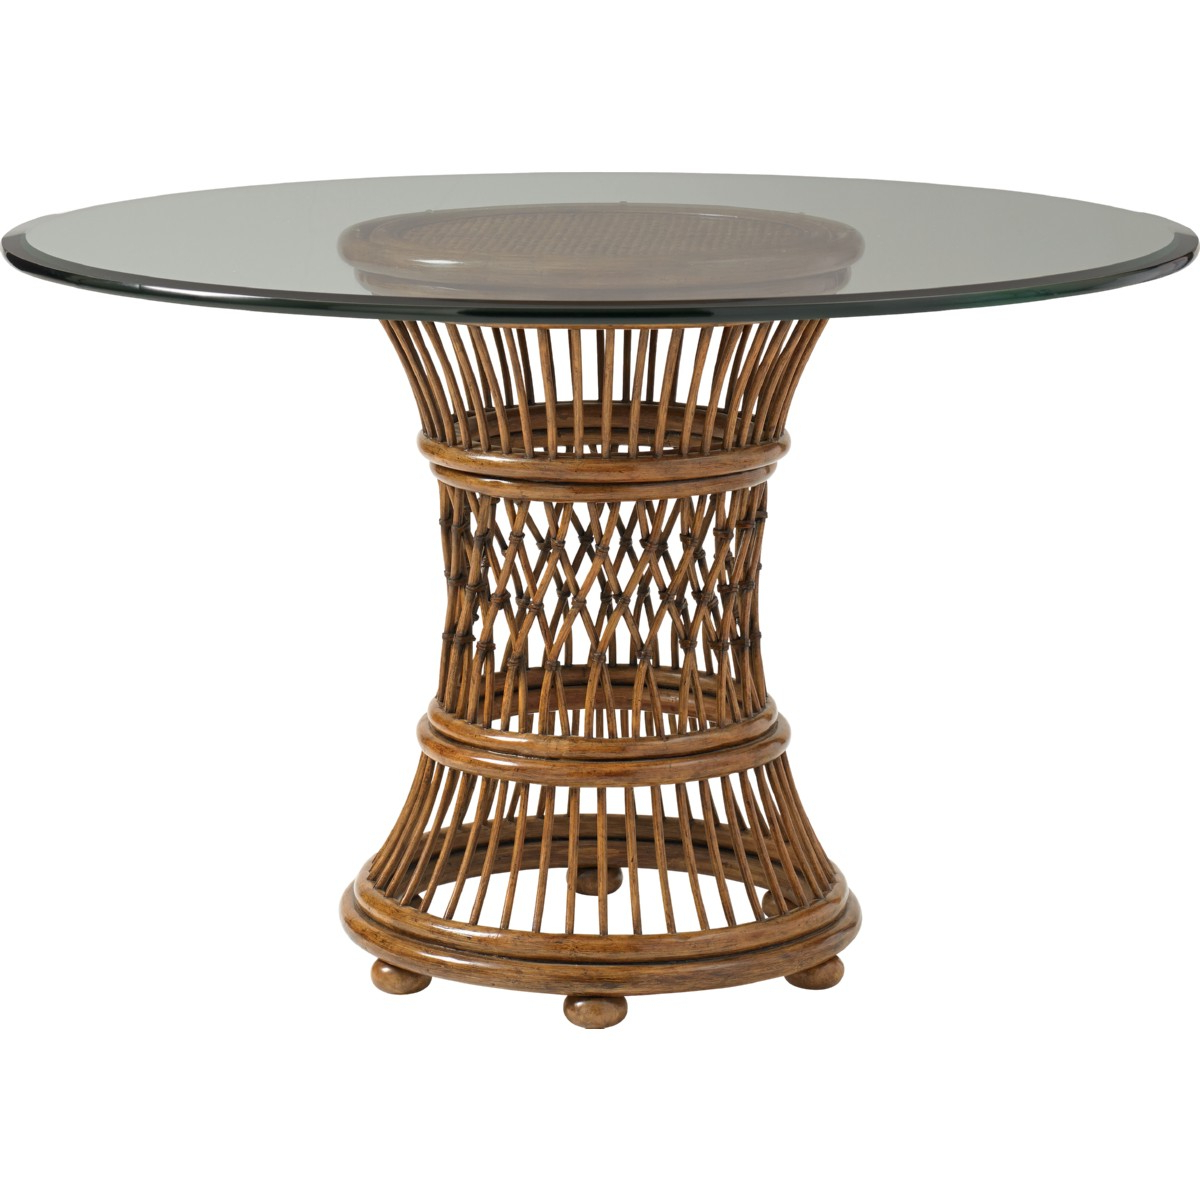 "Aruba 36"" Dining Table W/ Leather Wrapped Rattan Base Throughout Popular Glass Top Condo Dining Tables (View 14 of 25)"